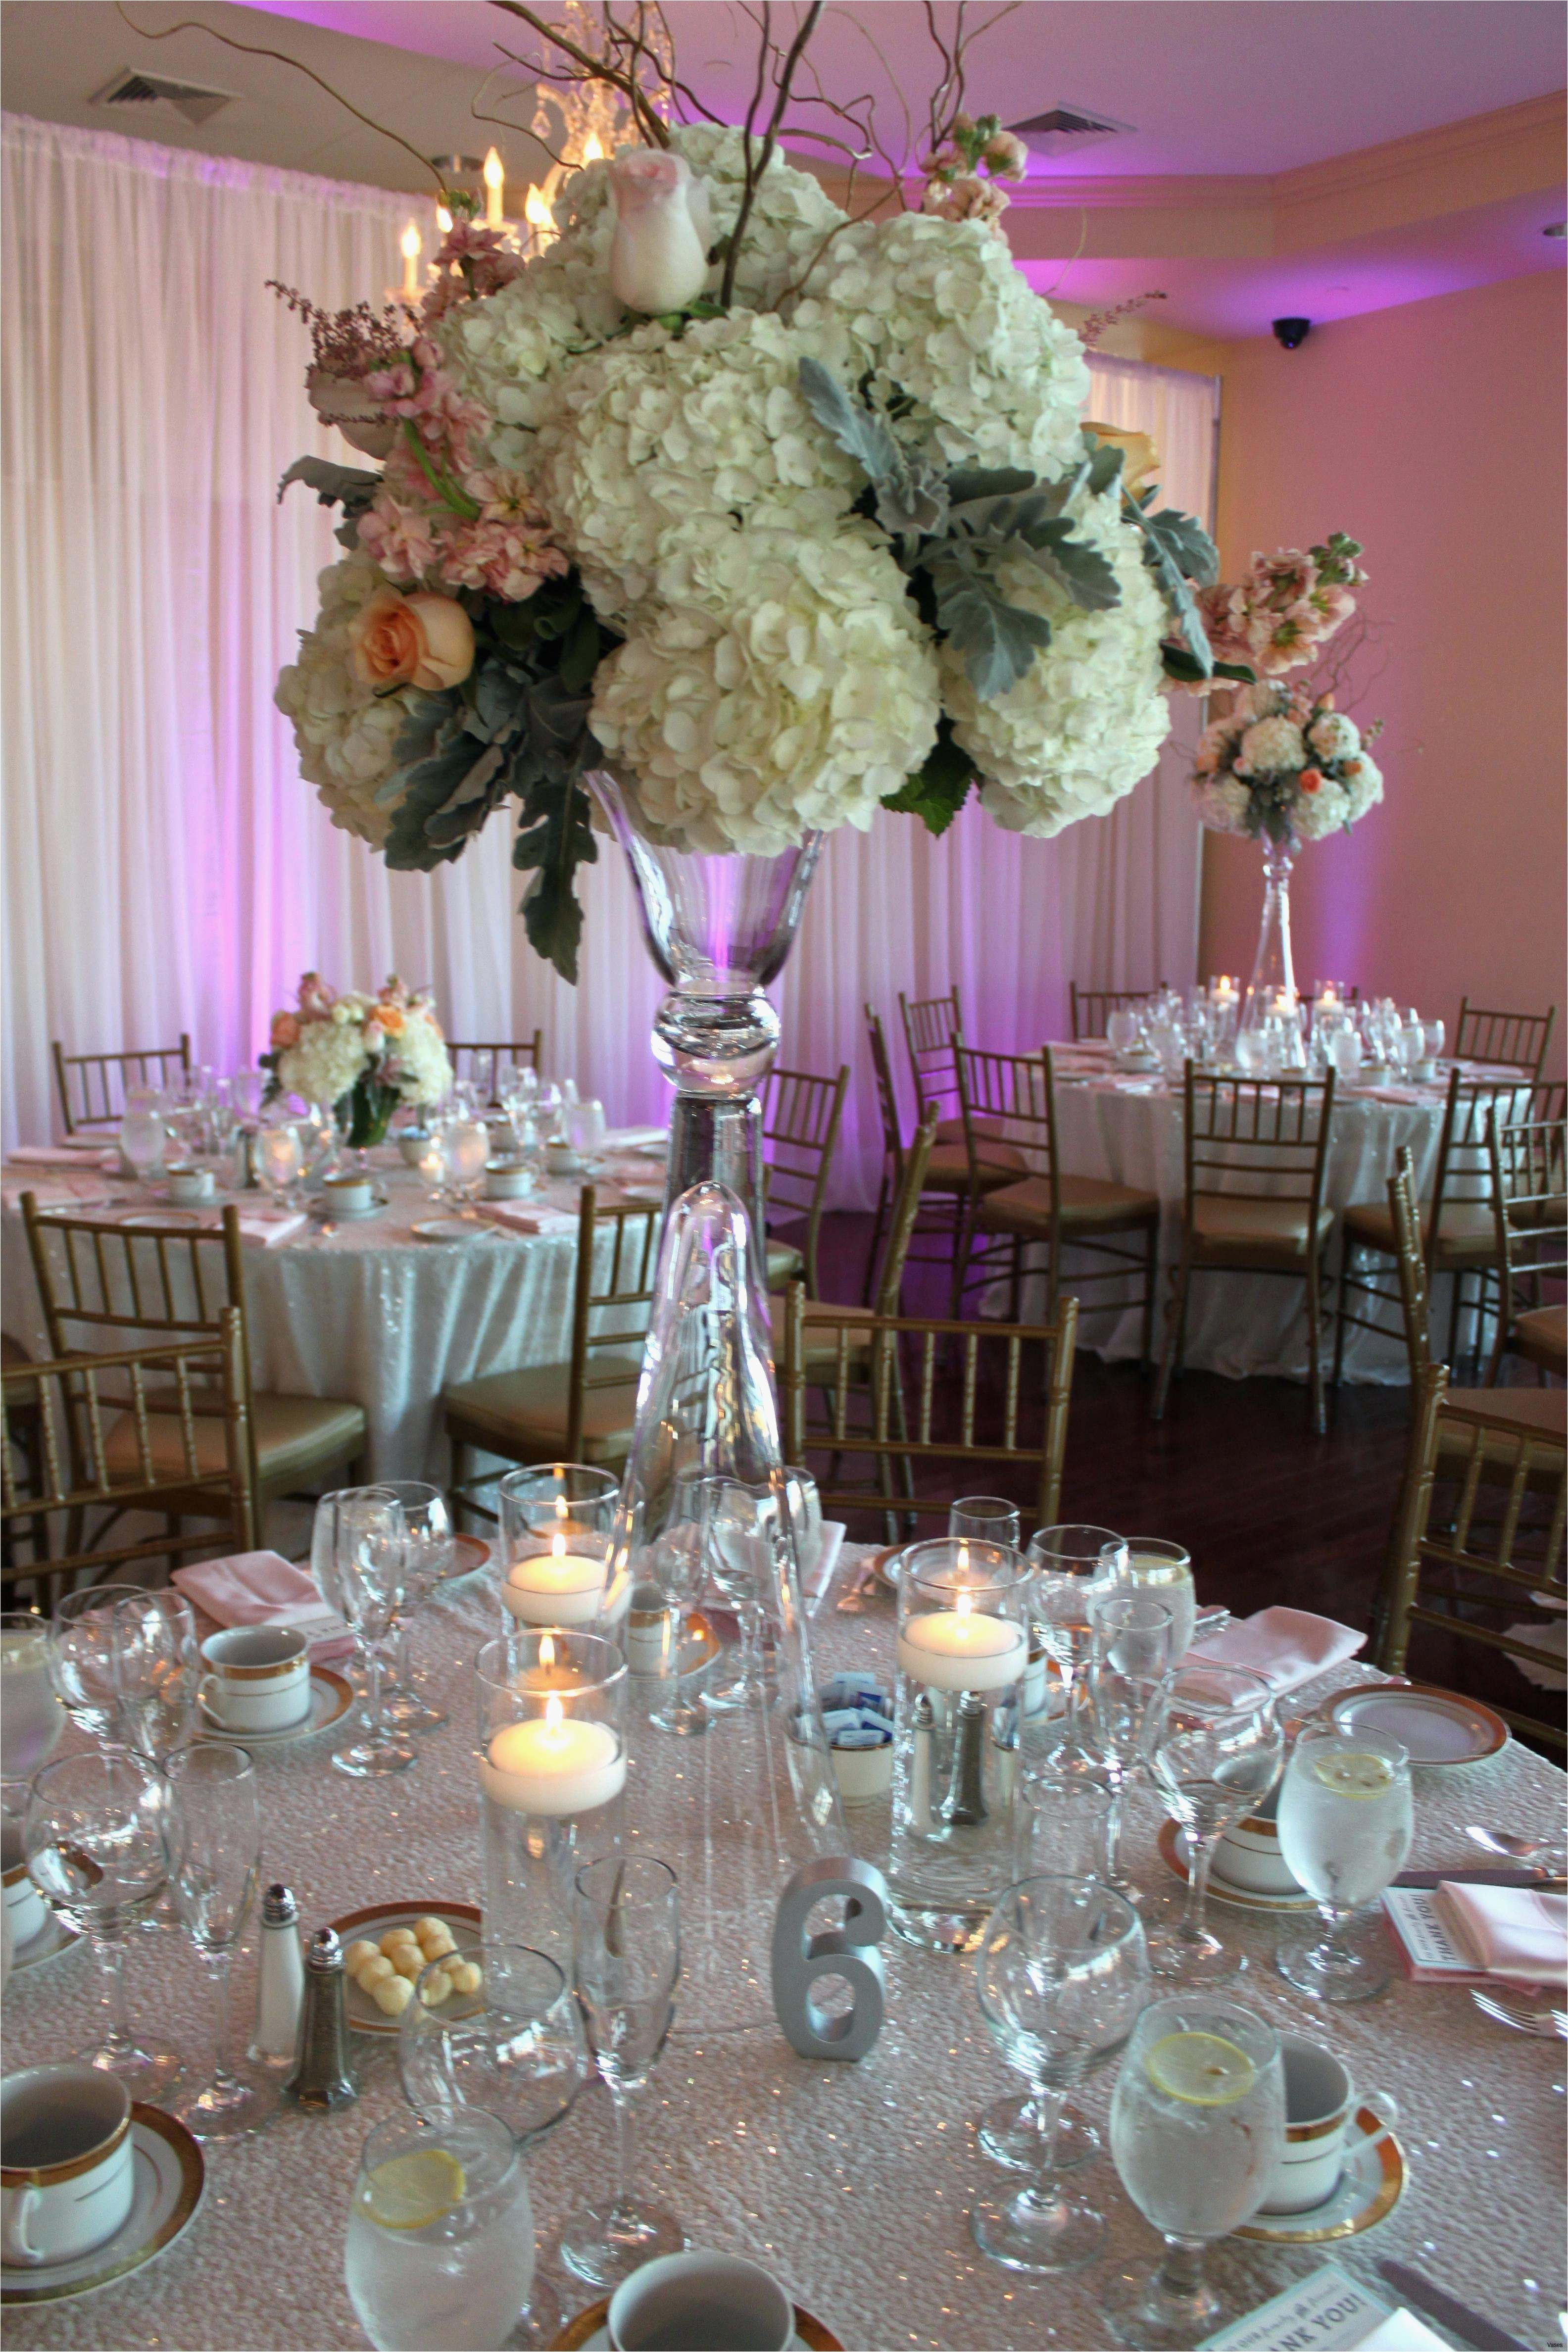 Wedding Decorations For Sale.16 Attractive Wedding Vases For Sale Decorative Vase Ideas